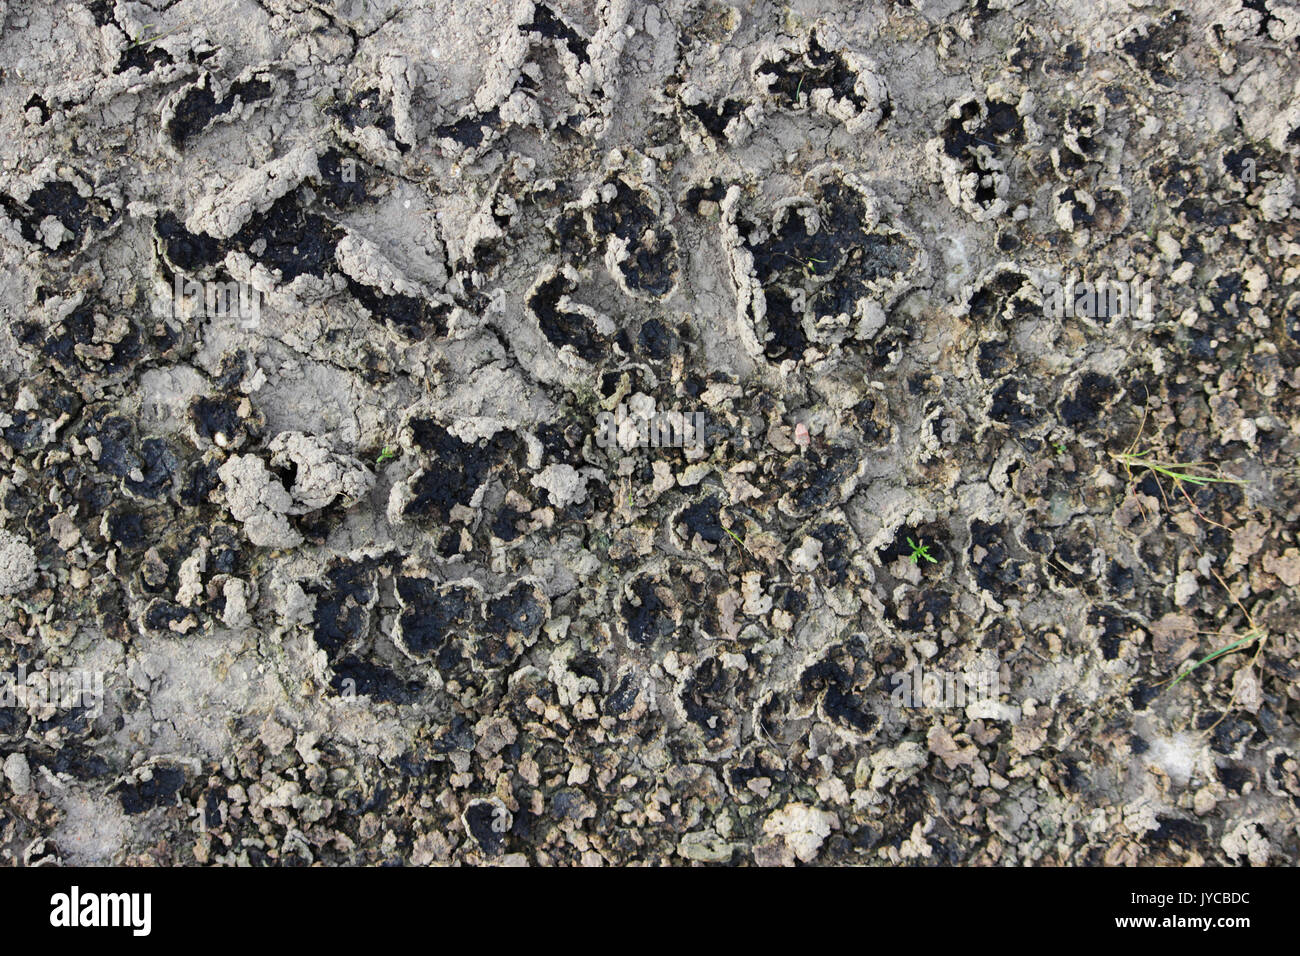 Drought. Dried bottom of lake, river, sea. Dry fractured soil of drought. Concept of drought, climate change, death without moisture. Ecology. Catastrophe. Mysticism. - Stock Image